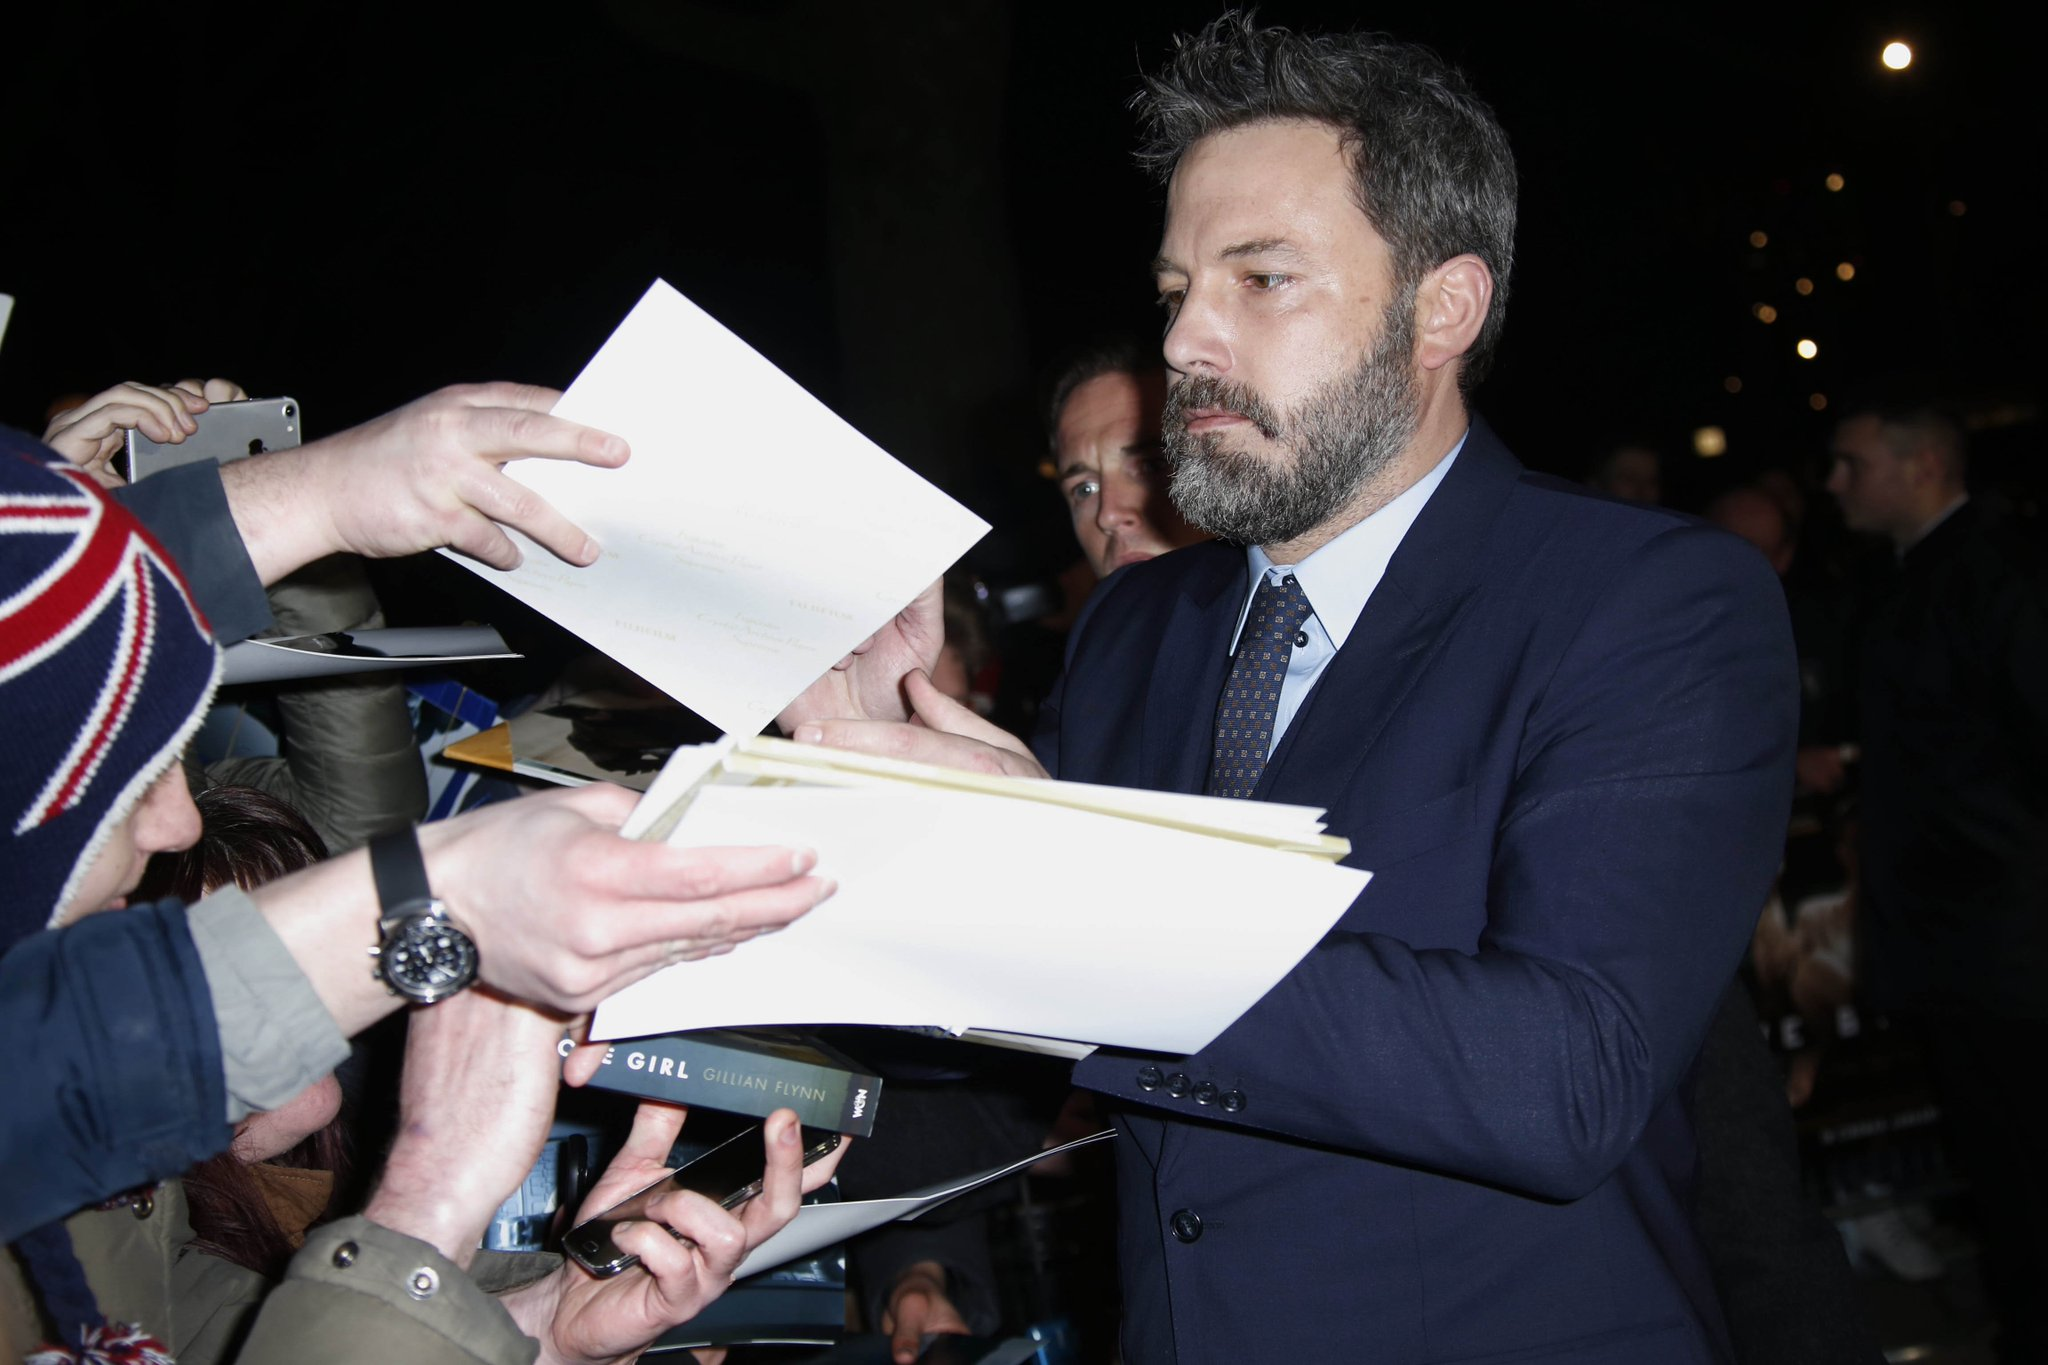 Ben Affleck braces for 'entertaining' Trump presidency  https://t.co/AwrwbXp3wS https://t.co/OinourkGH6